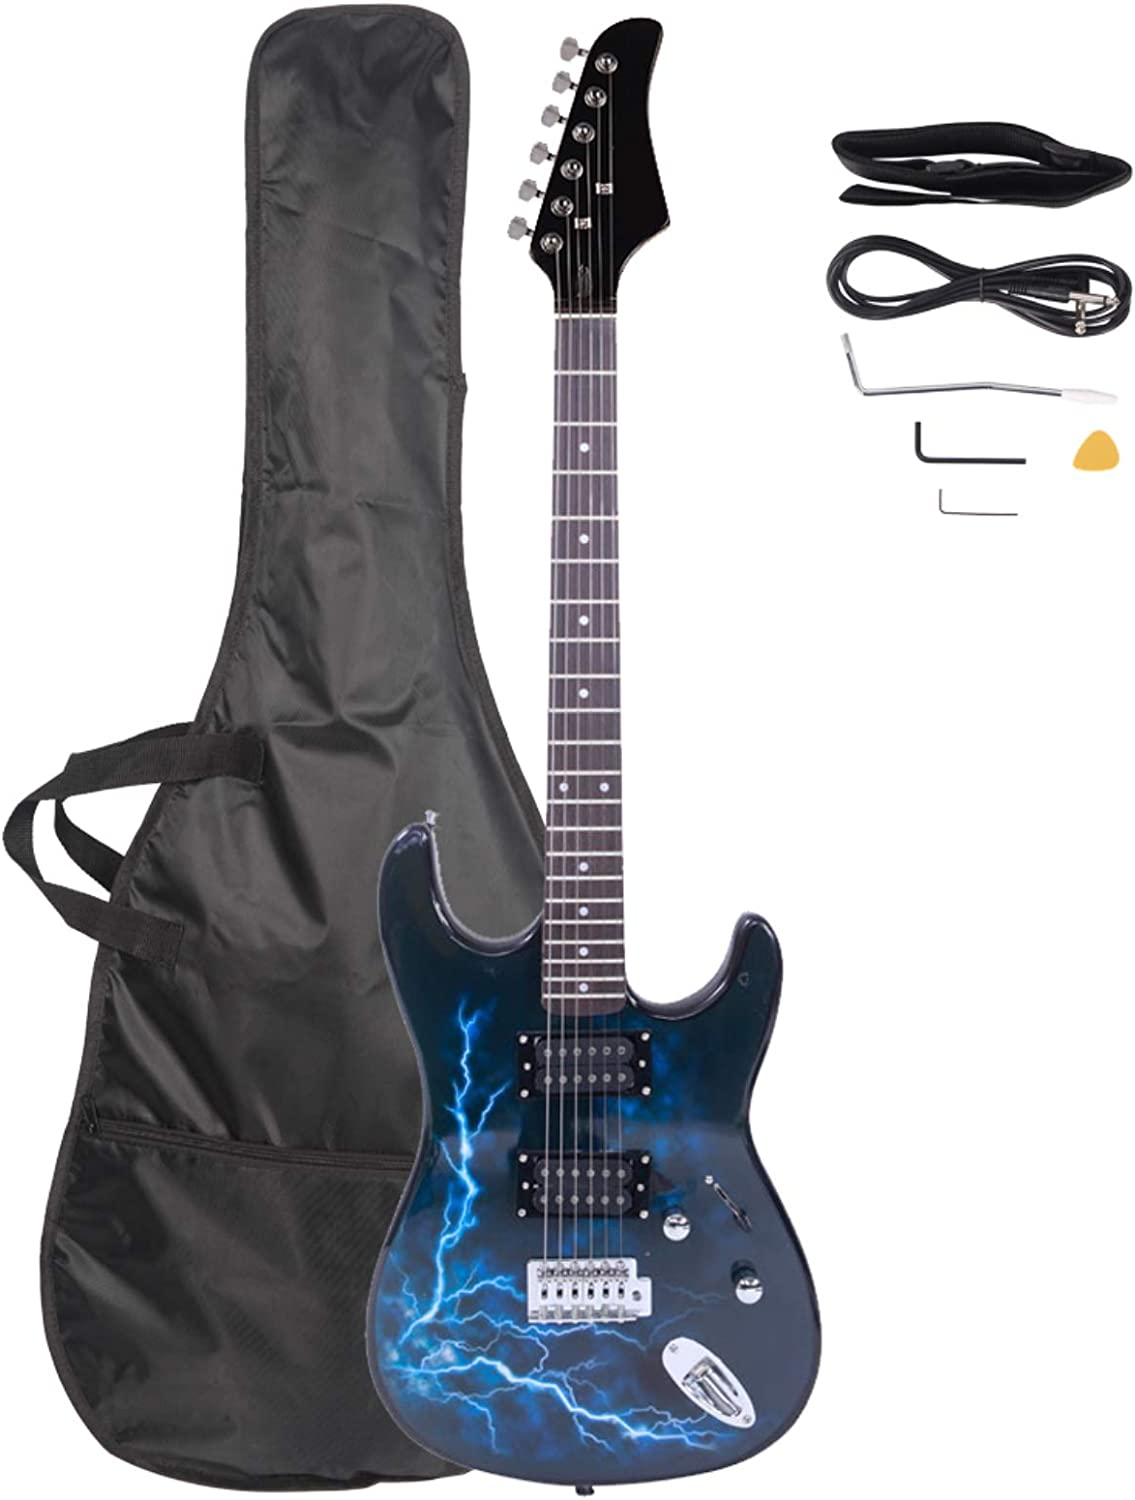 Lightning Style Electric Guitar Ranking TOP15 New sales with Bag Strap Plectr Cord Power